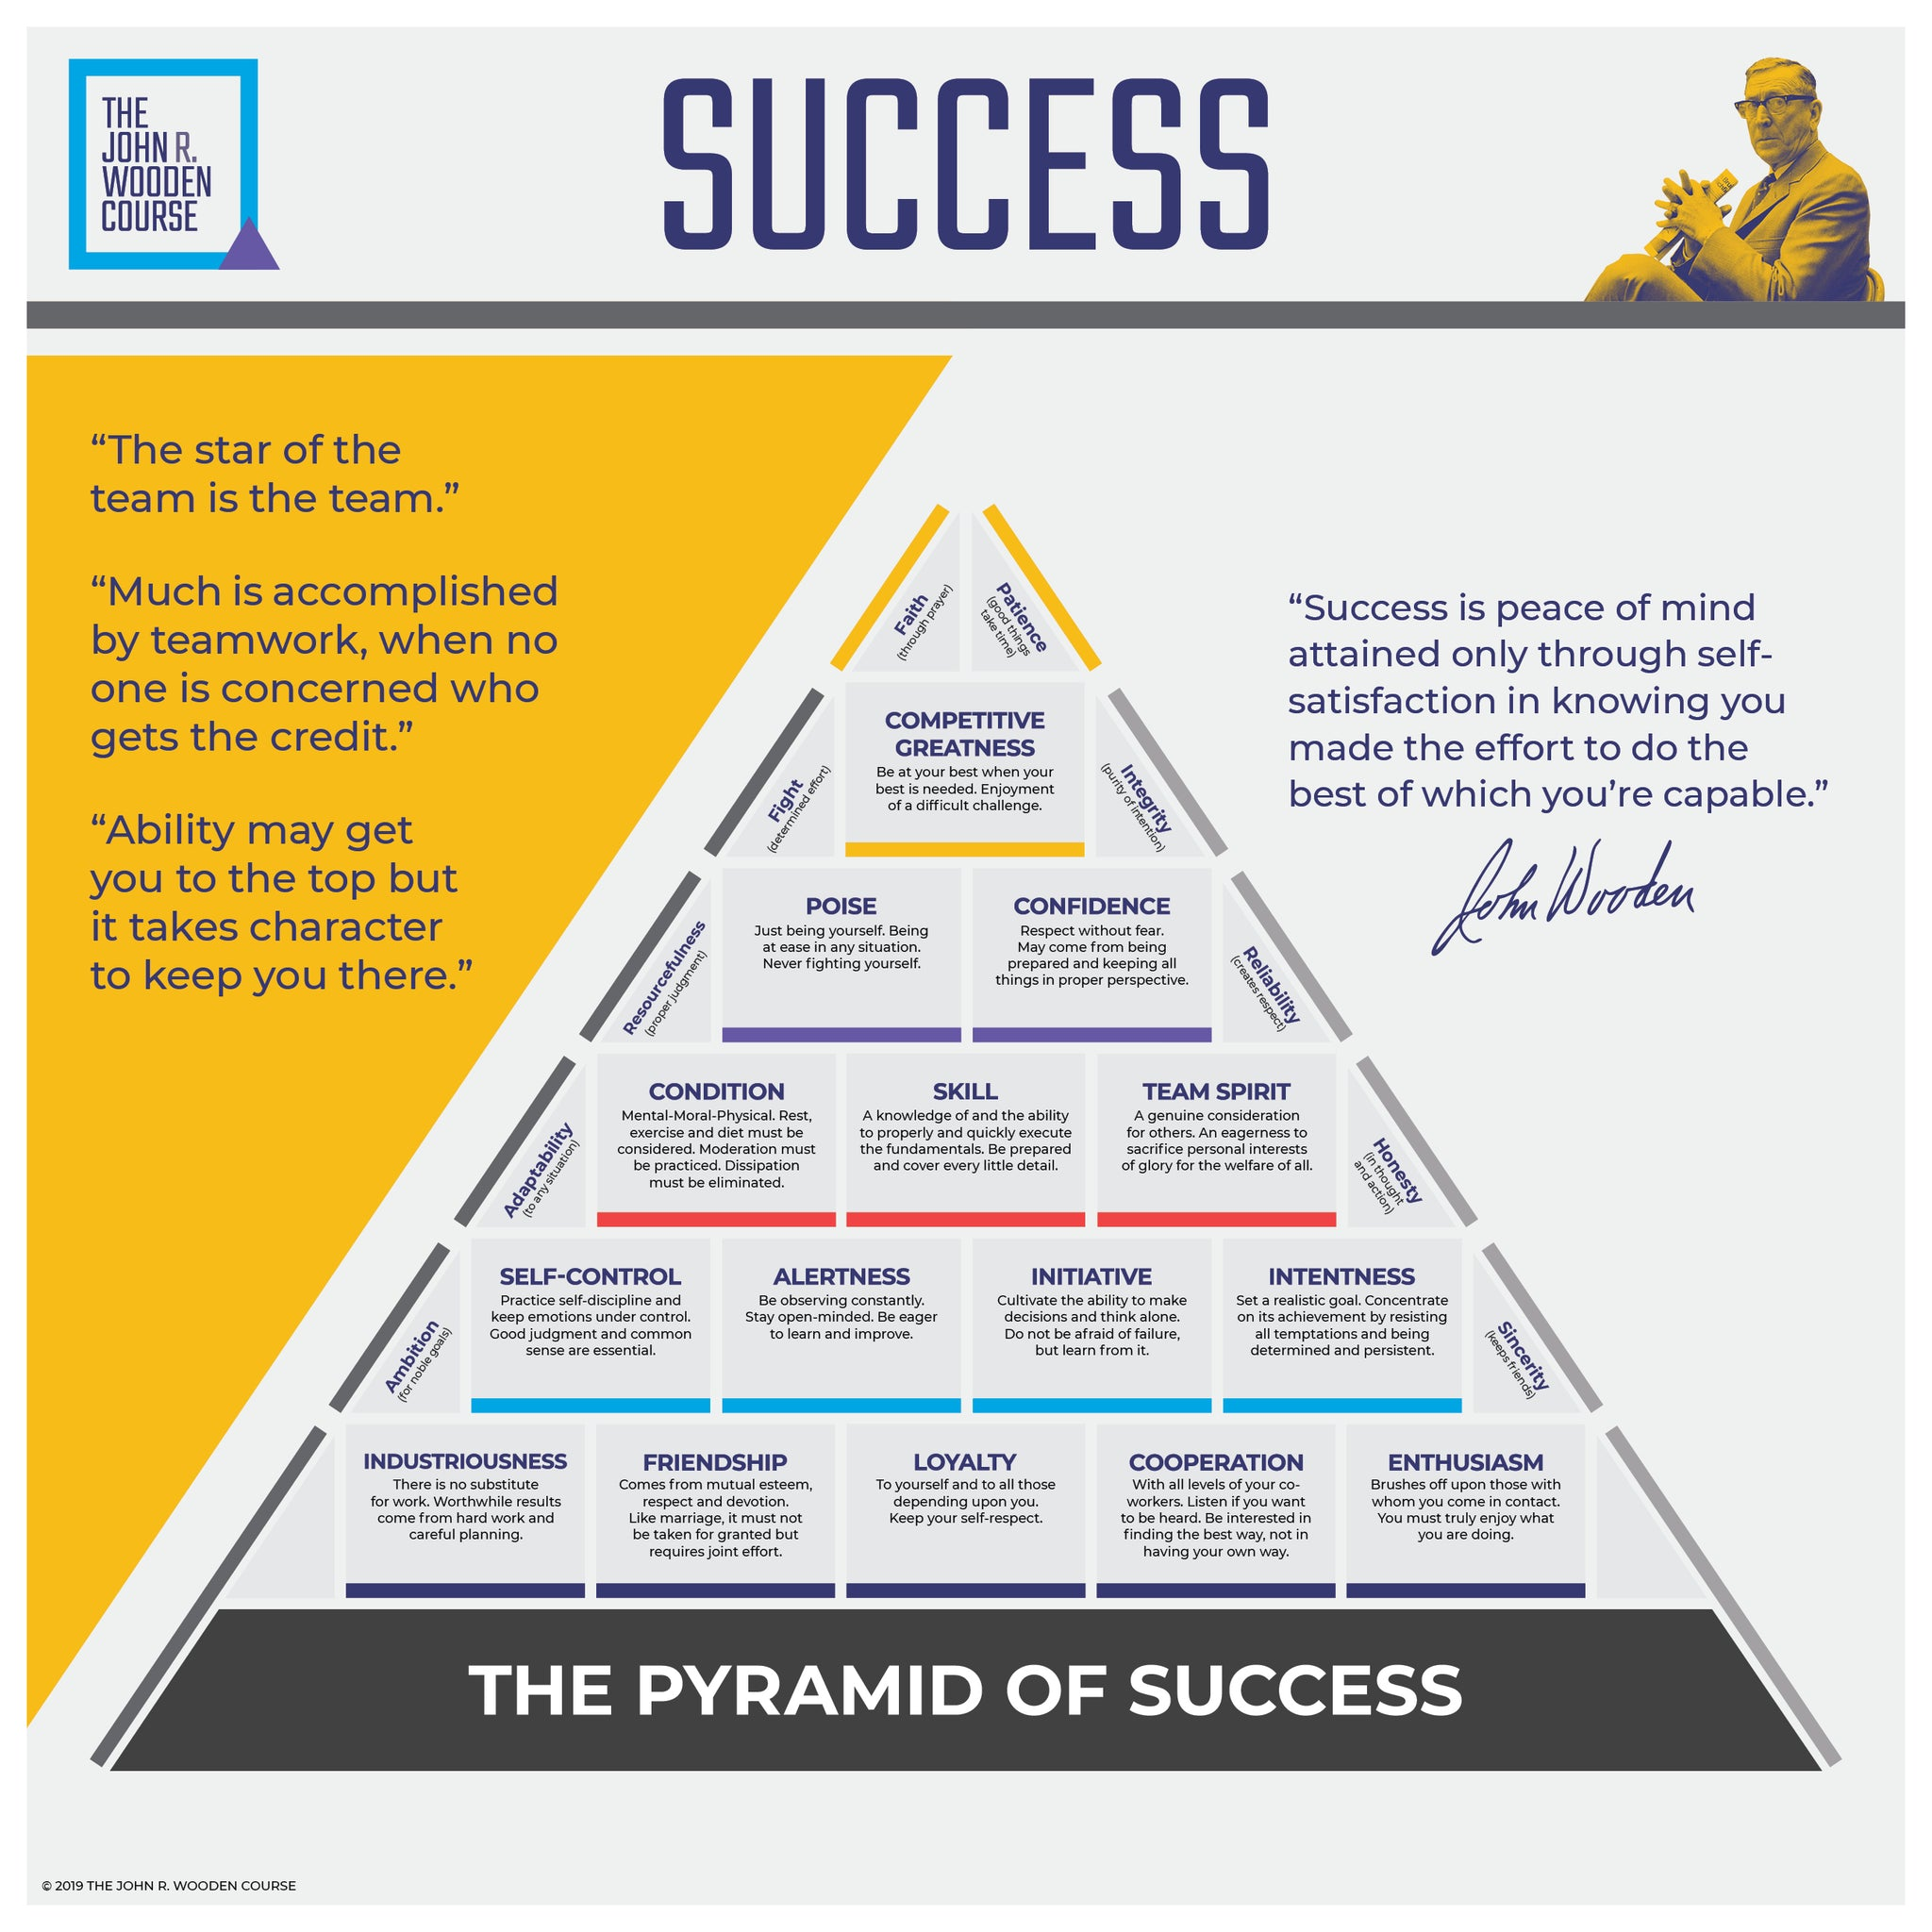 John R. Wooden Course Pyramid of Success Team fathead wall poster